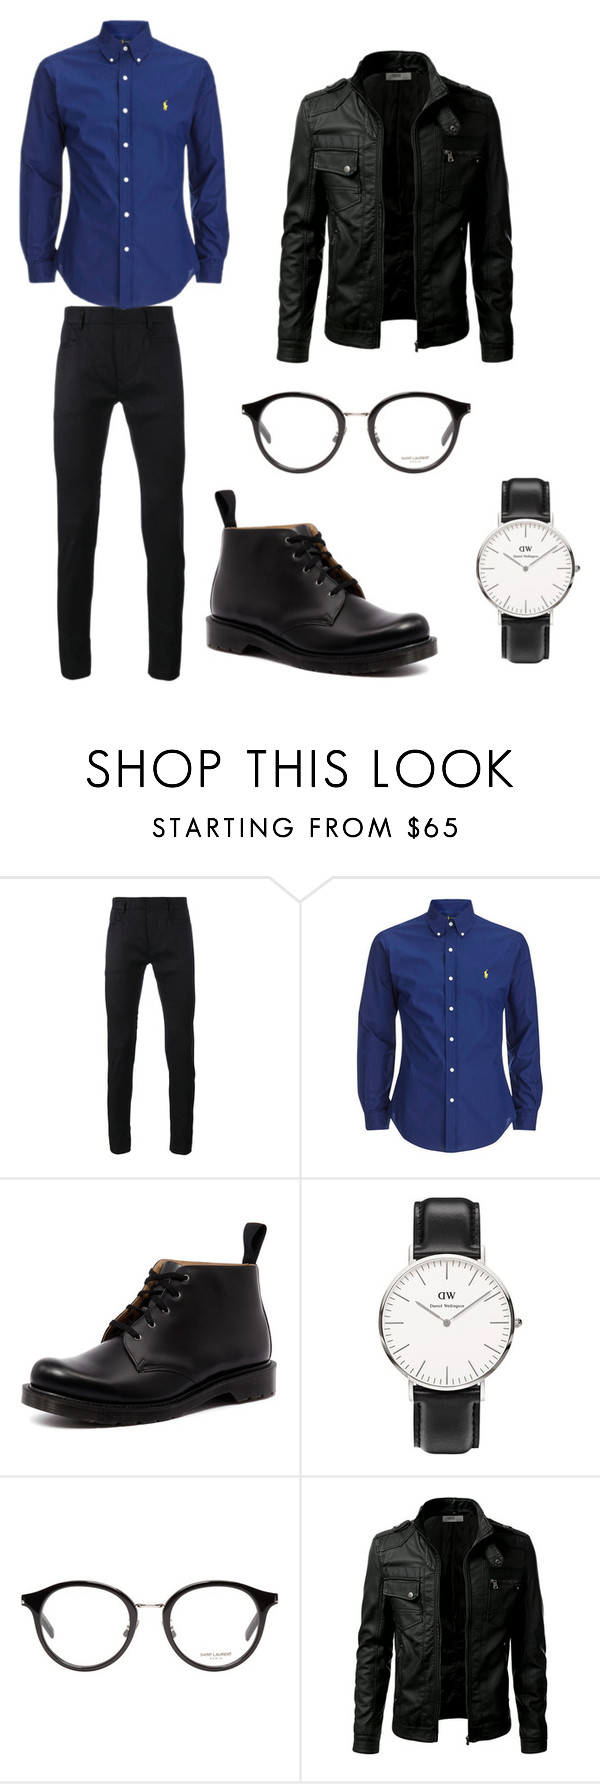 """Outfit.6.- Man"" by bea-palaio ❤ liked on Polyvore featuring Haider Ackermann, Dr. Martens, Daniel Wellington, Yves Saint Laurent, men's fashion and menswear"